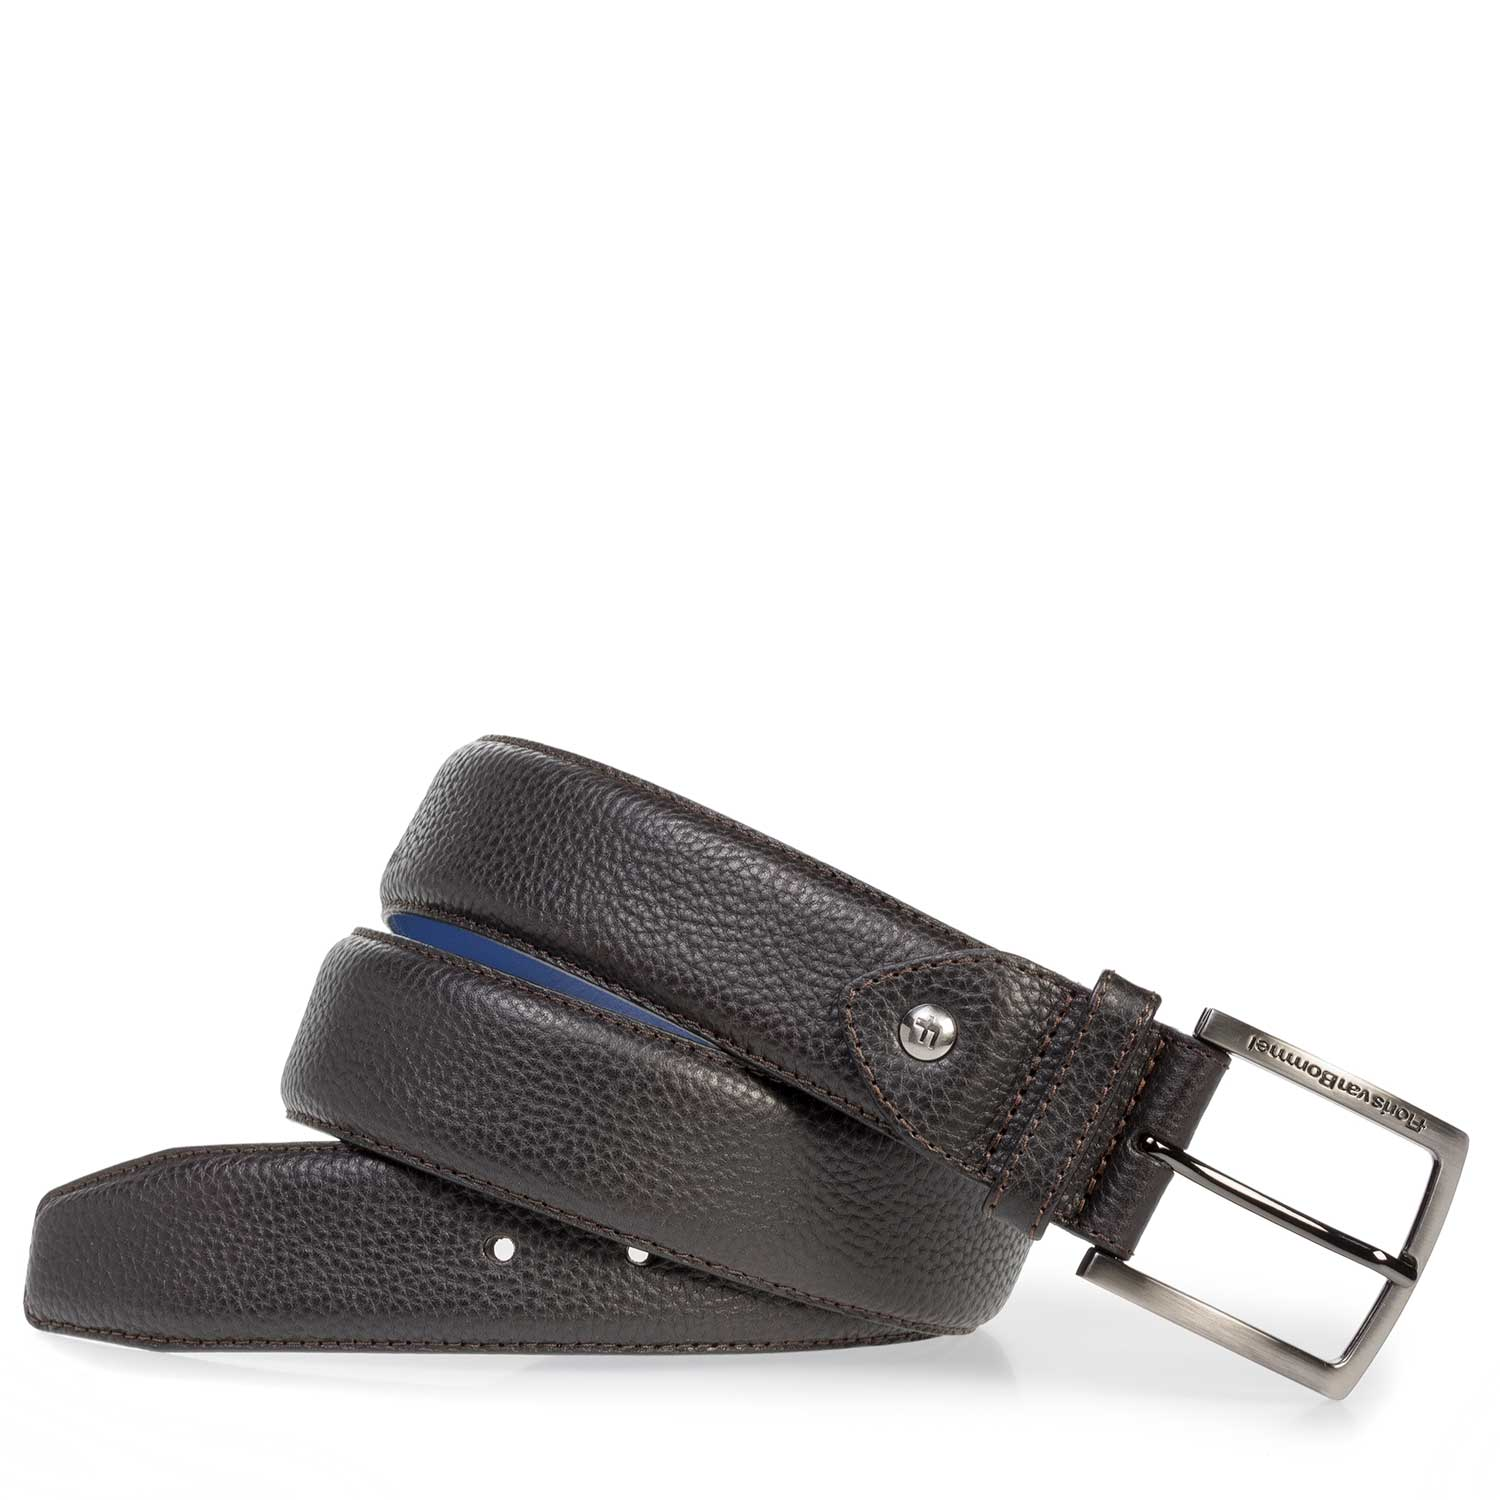 75202/09 - Black leather belt with structure